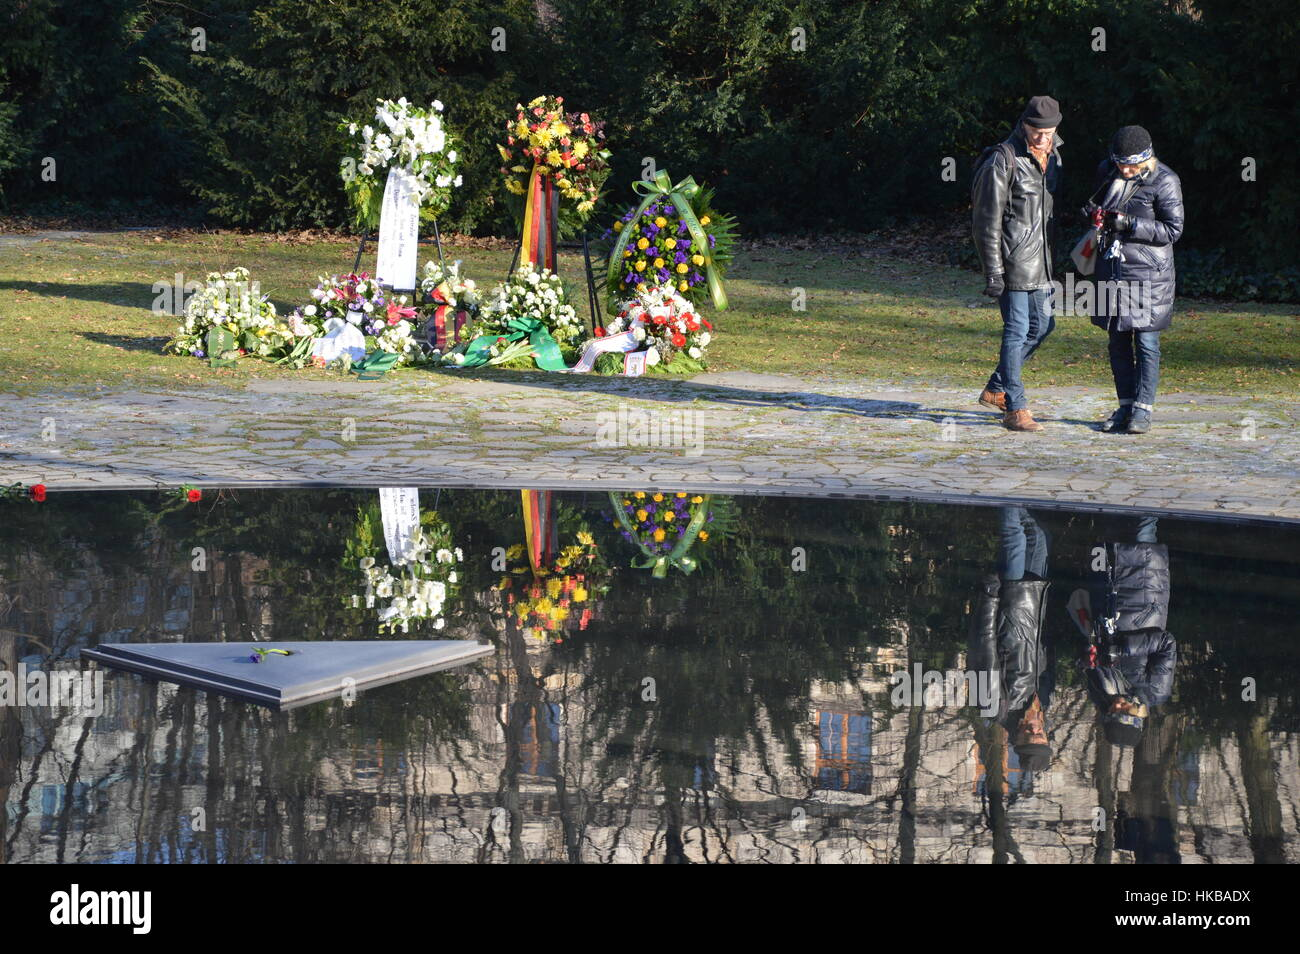 Berlin, Germany. 27th Jan, 2017 - International Holocaust Remembrance Day in Berlin Credit: Markku Rainer Peltonen/Alamy Stock Photo